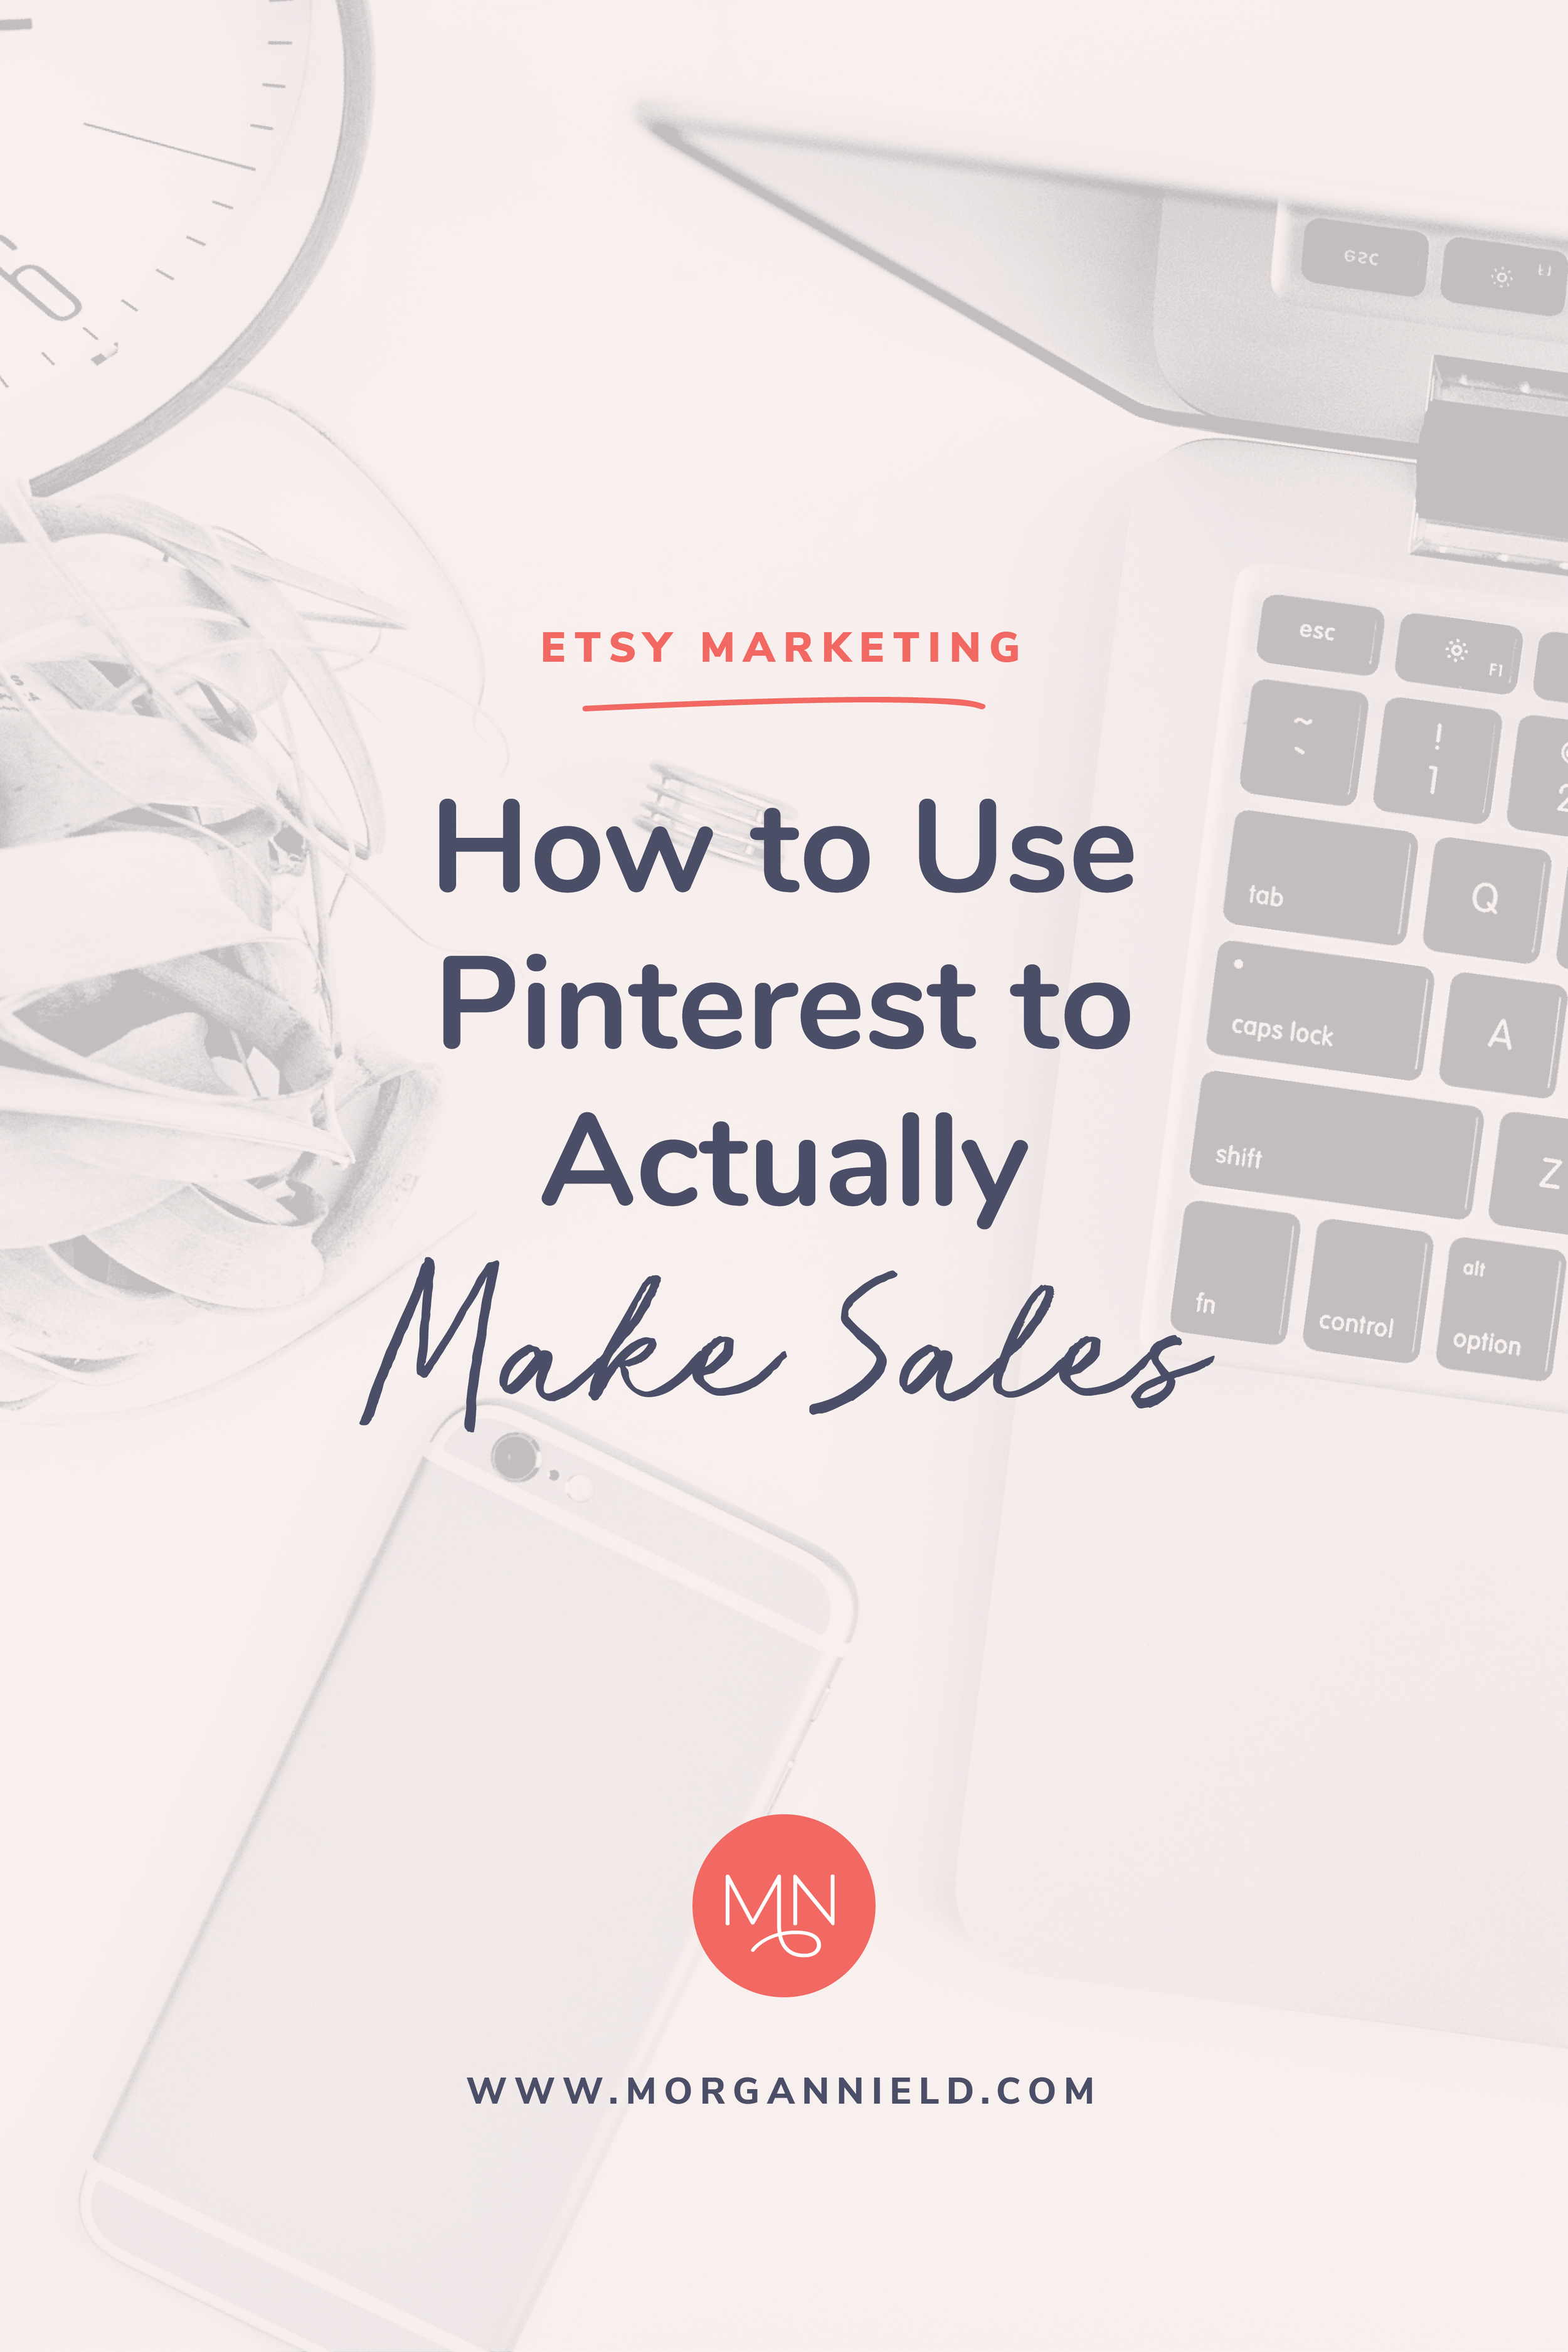 Pinterest is an AMAZING tool for driving traffic to your Etsy shop, but most Etsy shop owners have no idea how to effectively use it. Learn how to use your Pinterest account strategically and efficiently to market your Etsy shop and make sales every single day! >>